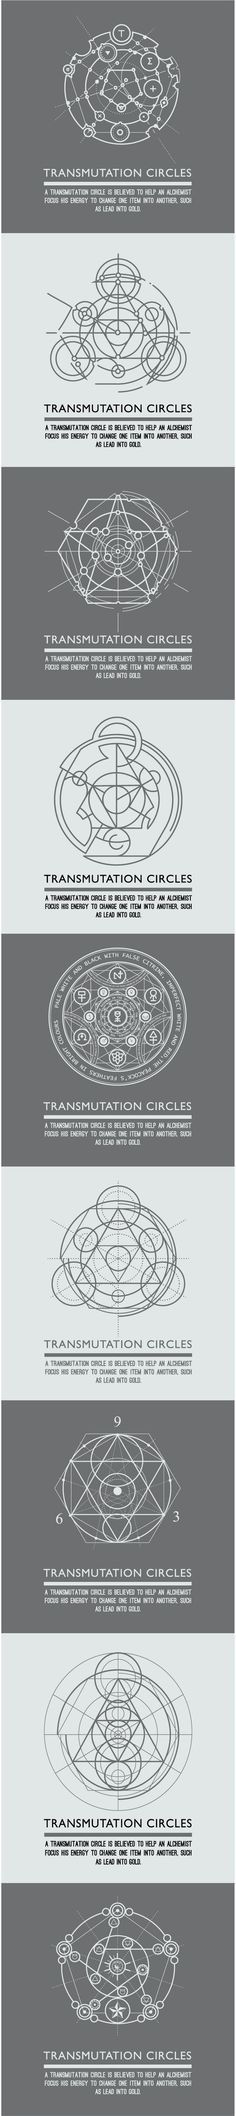 Transmutation circles - alchemical symbol - sacred geometry - can be used in…: